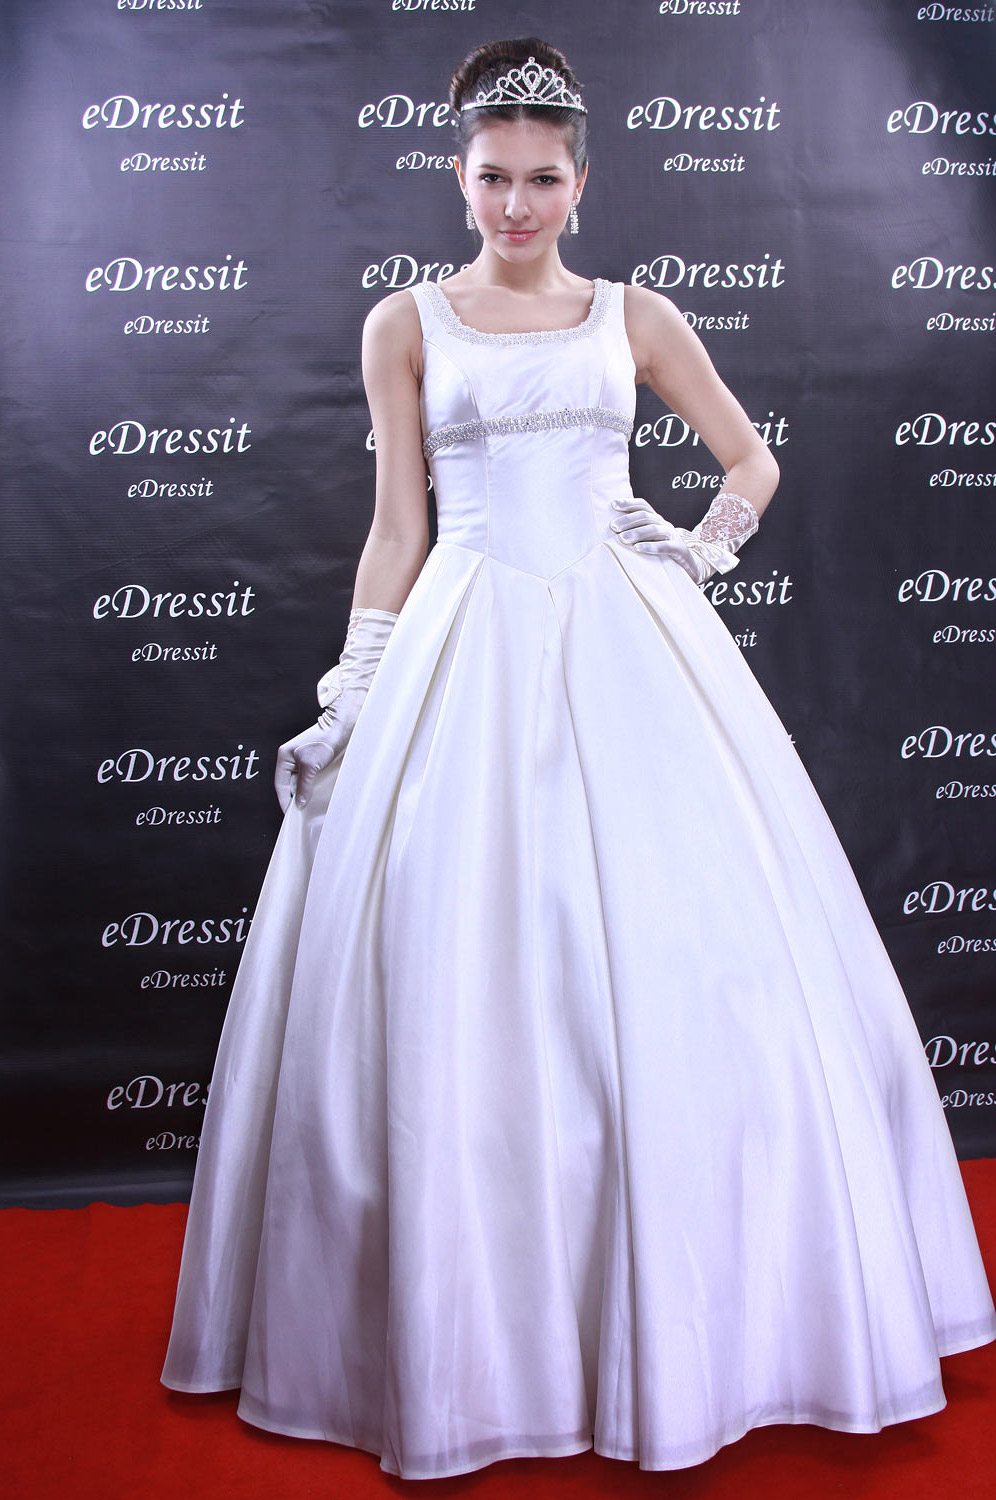 Christmas Discount 50% Off eDressit White Prom Gown Evening Wedding Dress (01091607)